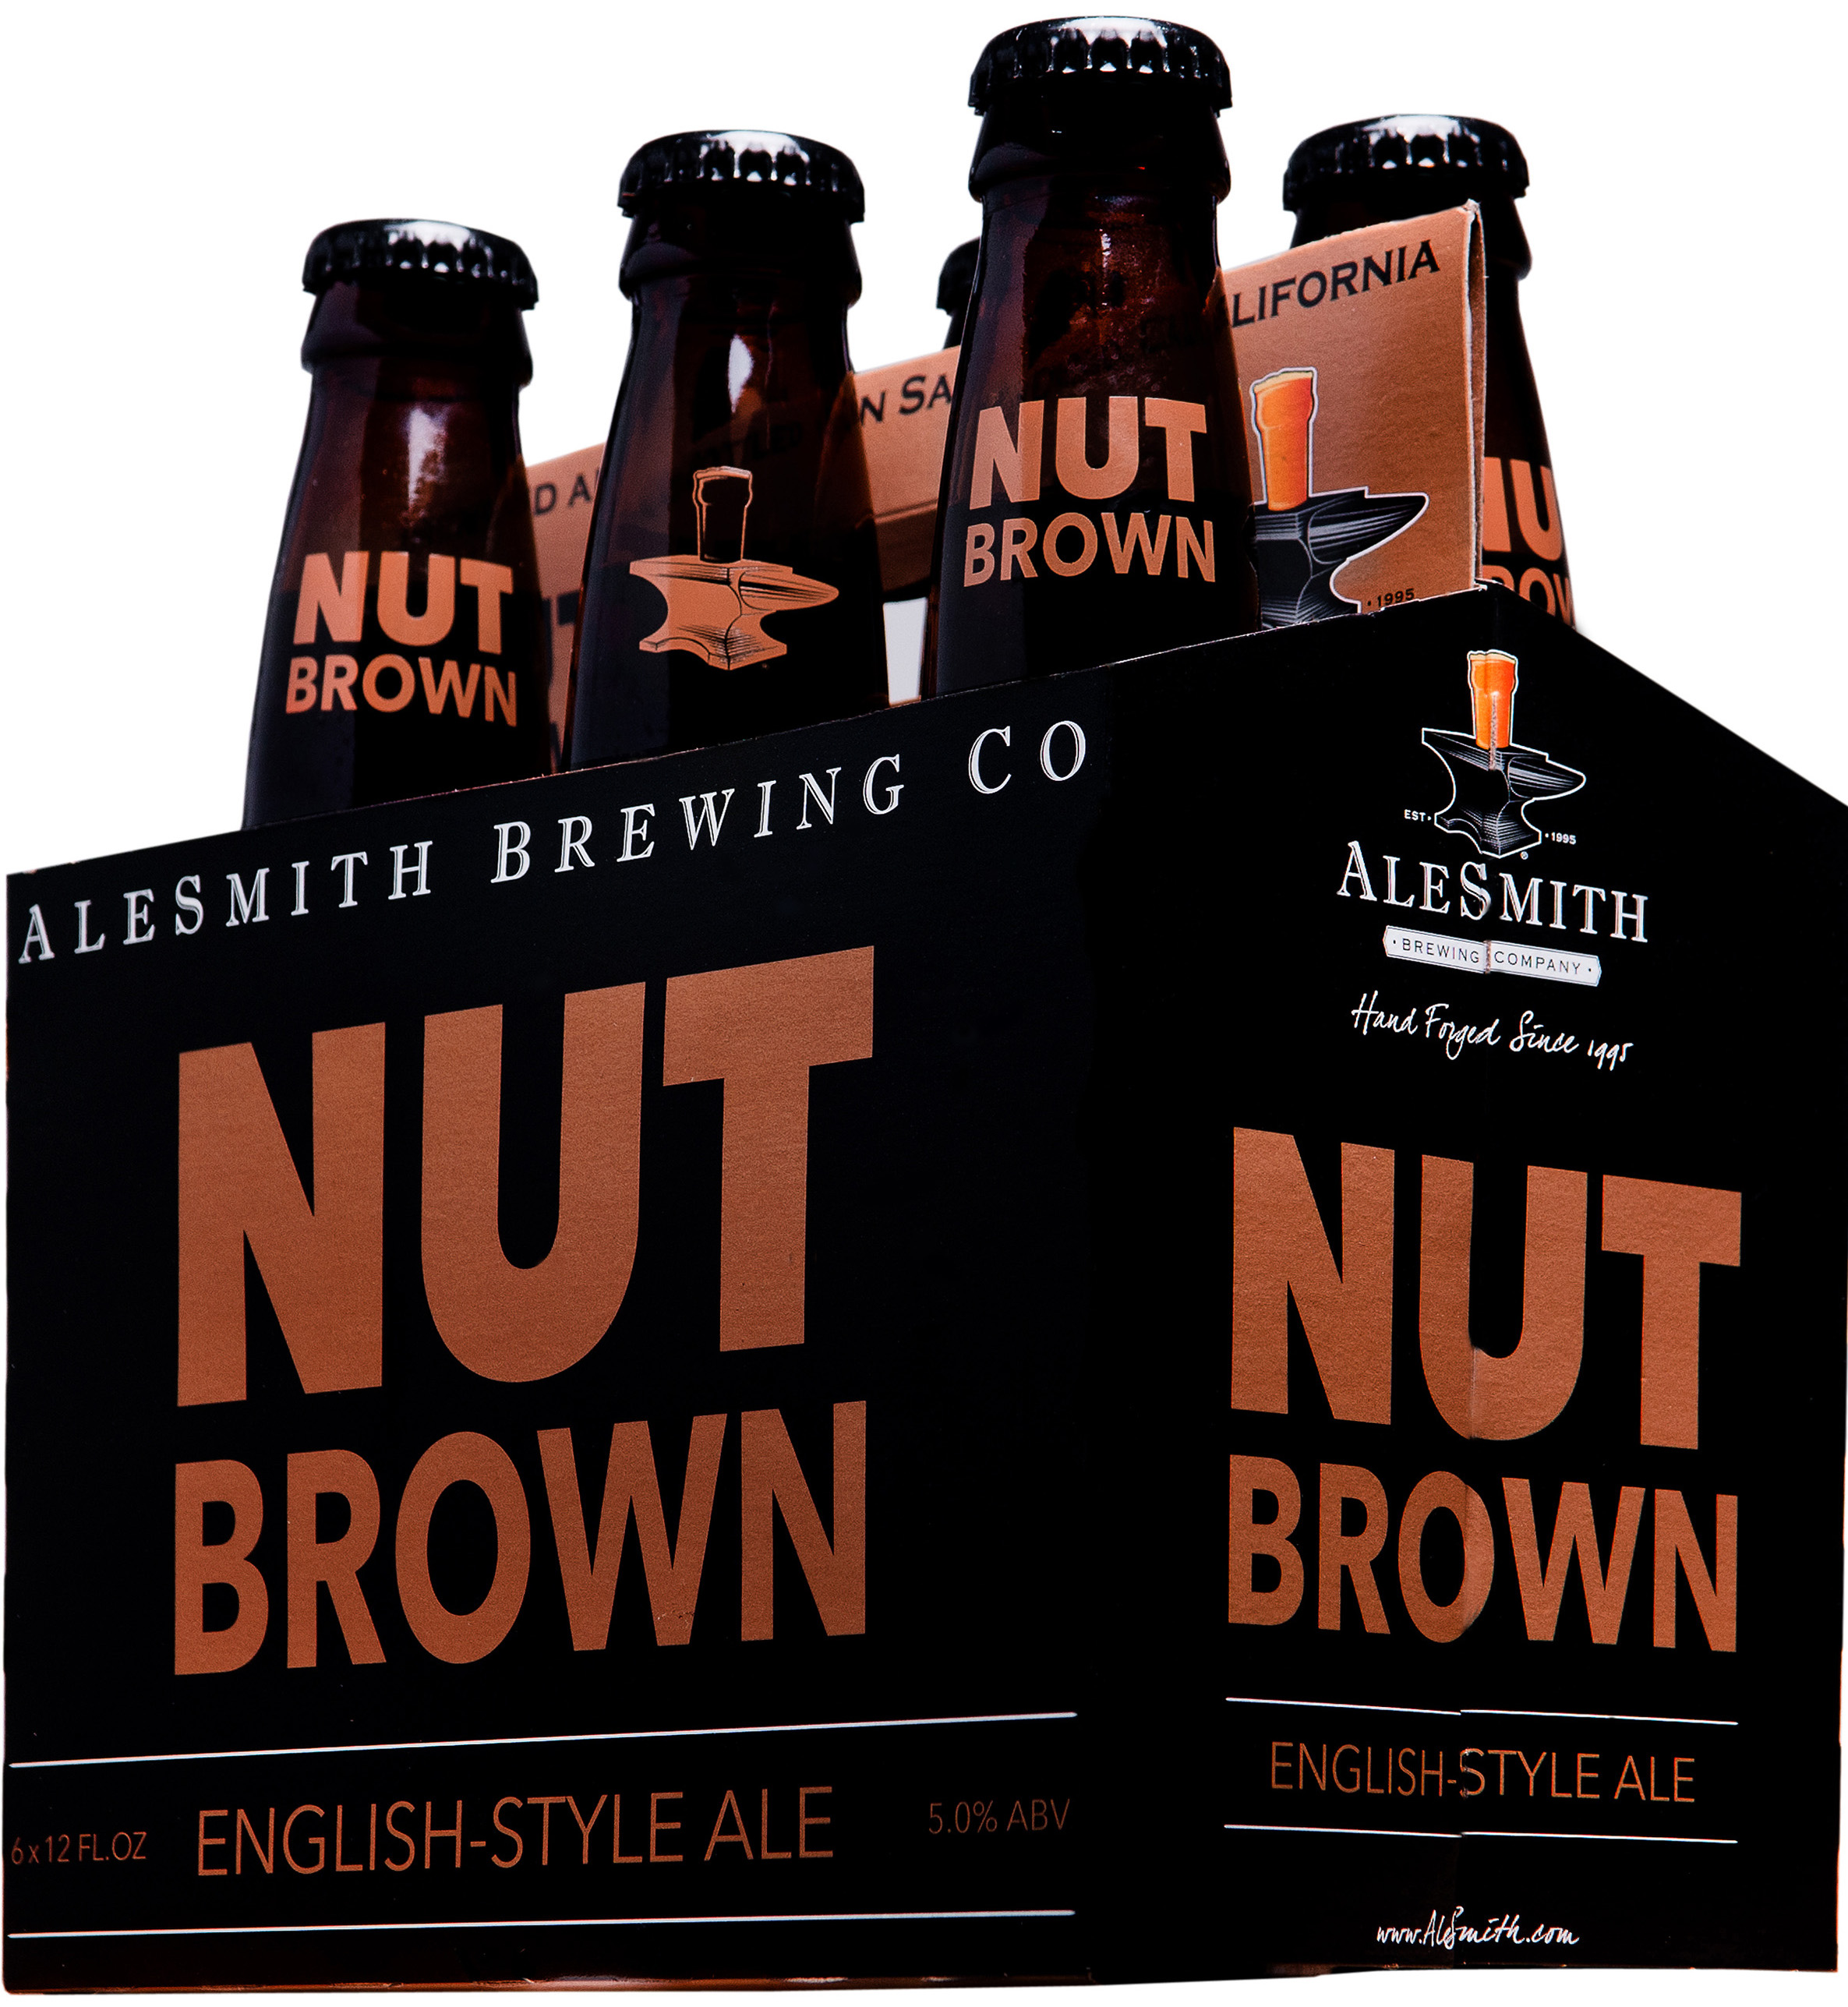 Alesmith Brewing Company's Nut Brown Ale